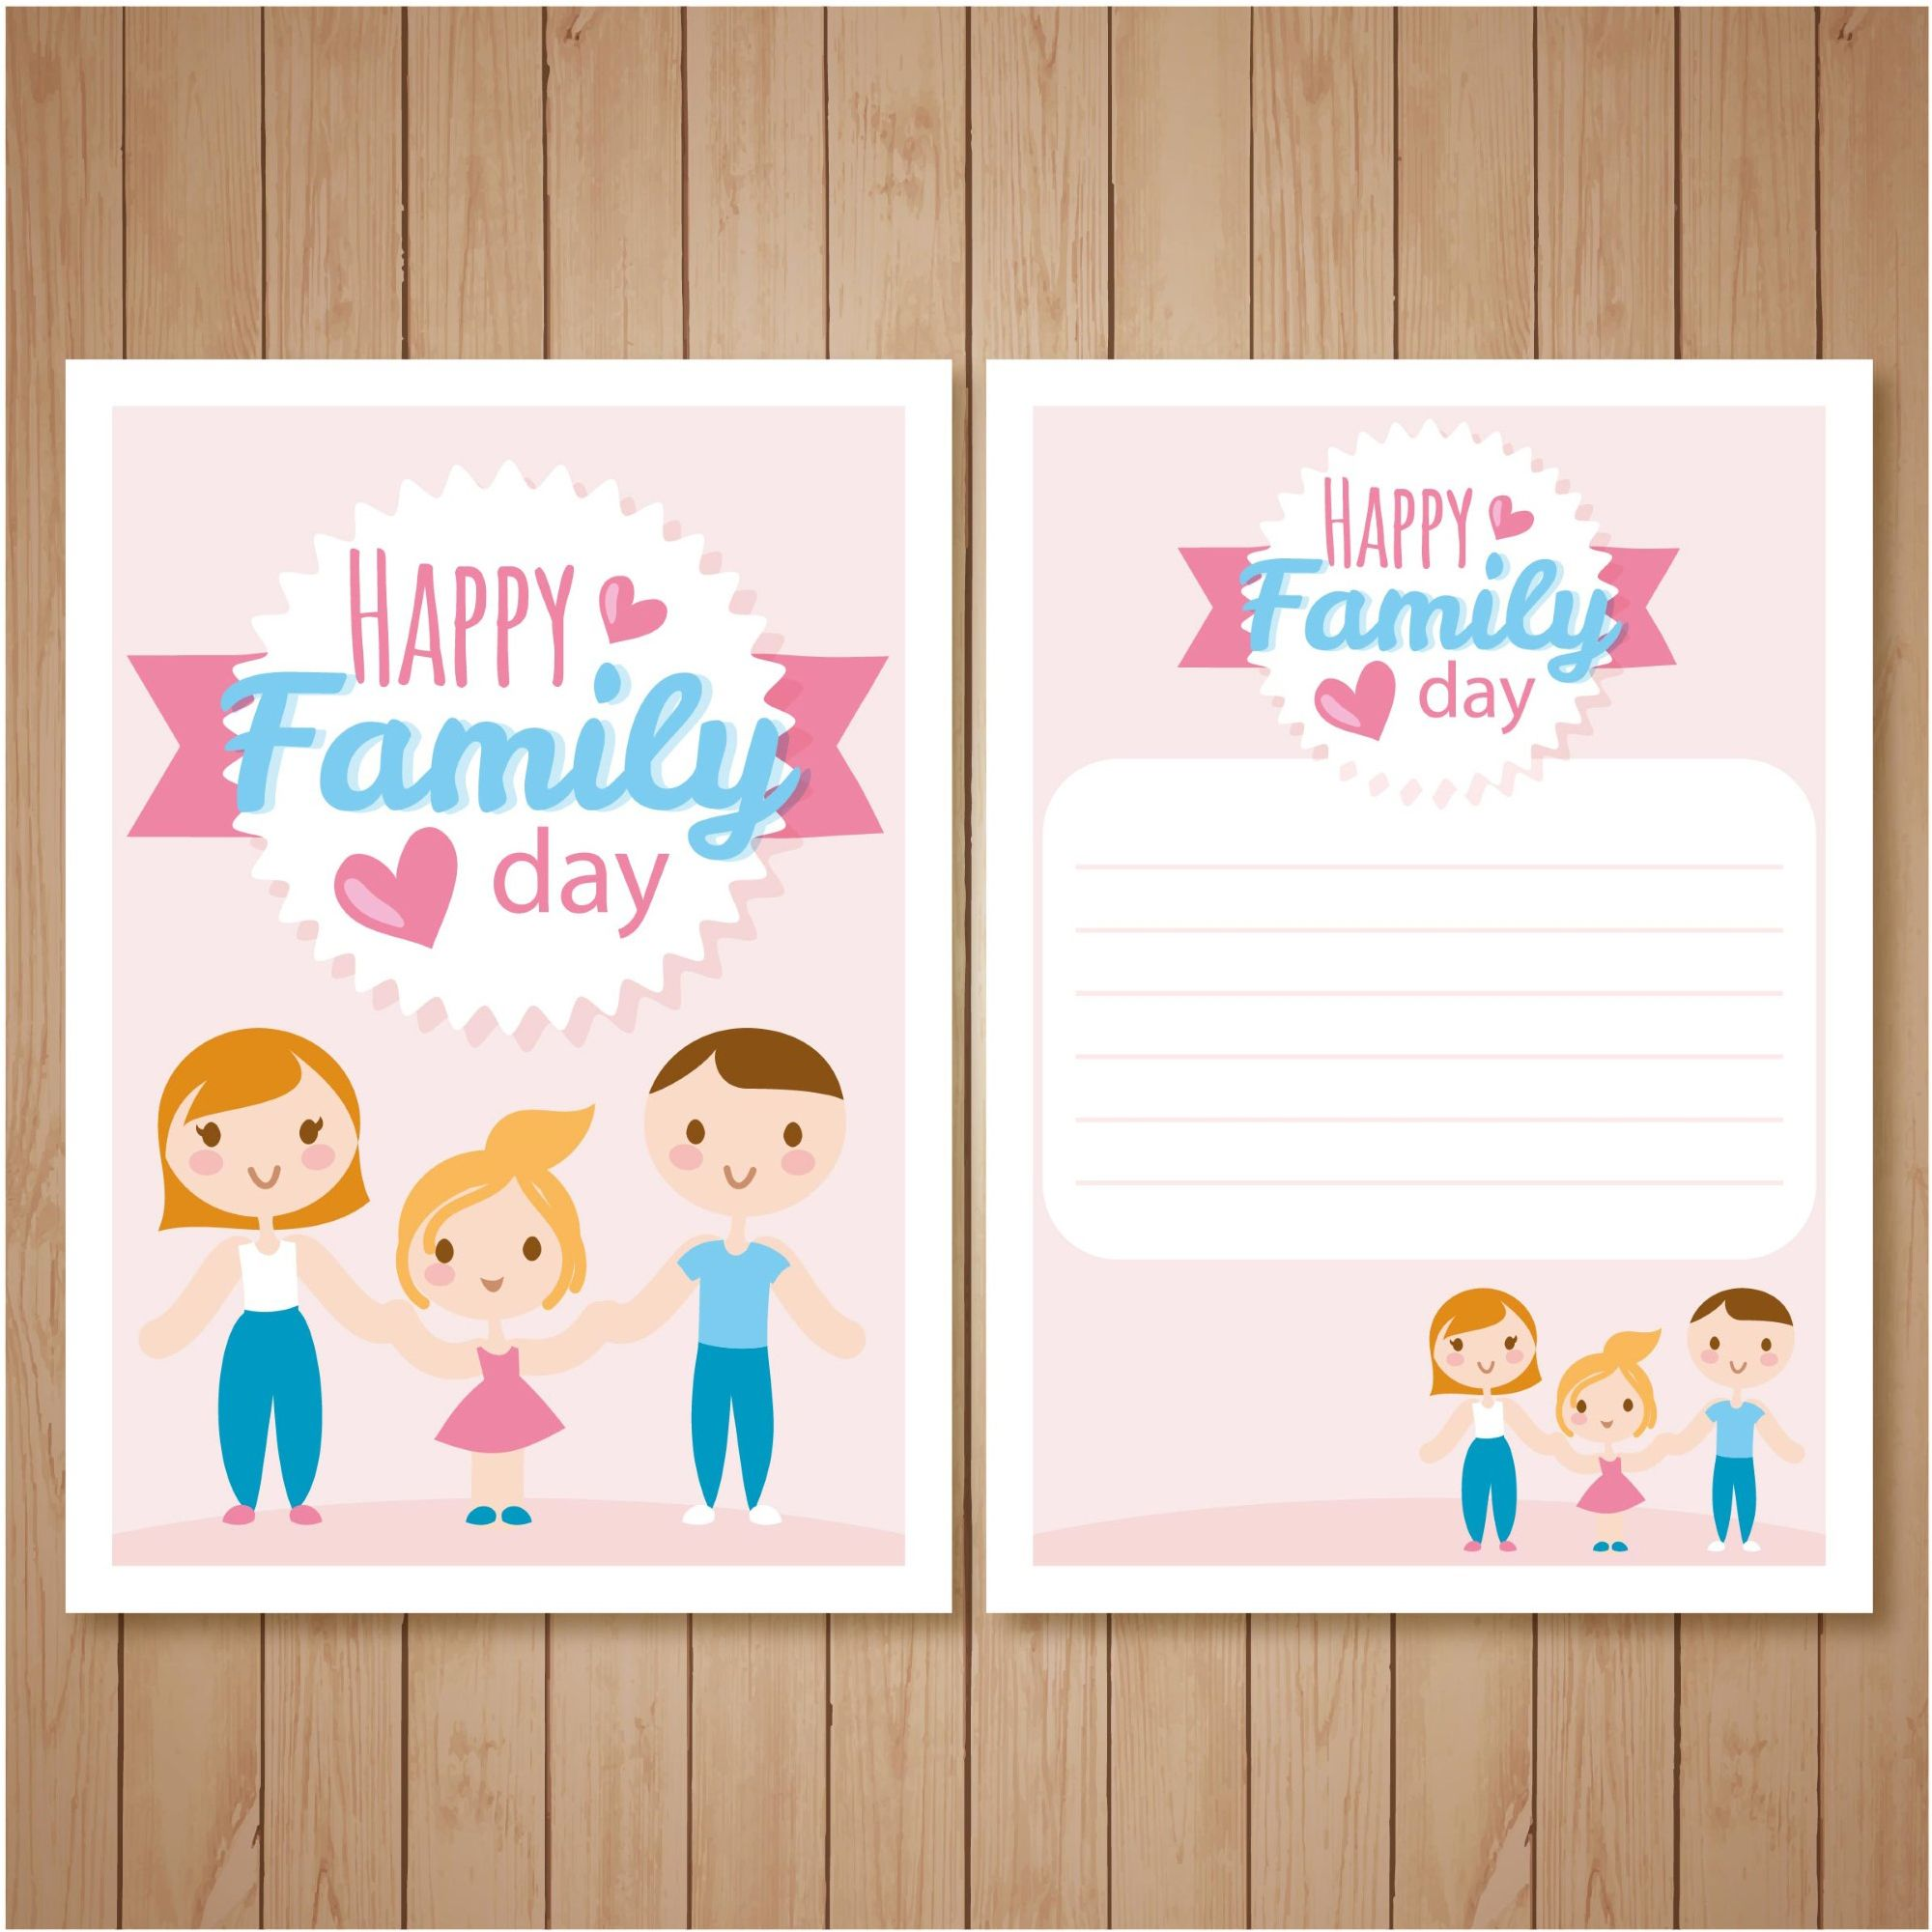 Happy family day greeting design card for chilerns 500 best are you looking for mother day greeting card vector background we have combined 604 mothers day vector party background for crafts and decorations kristyandbryce Images